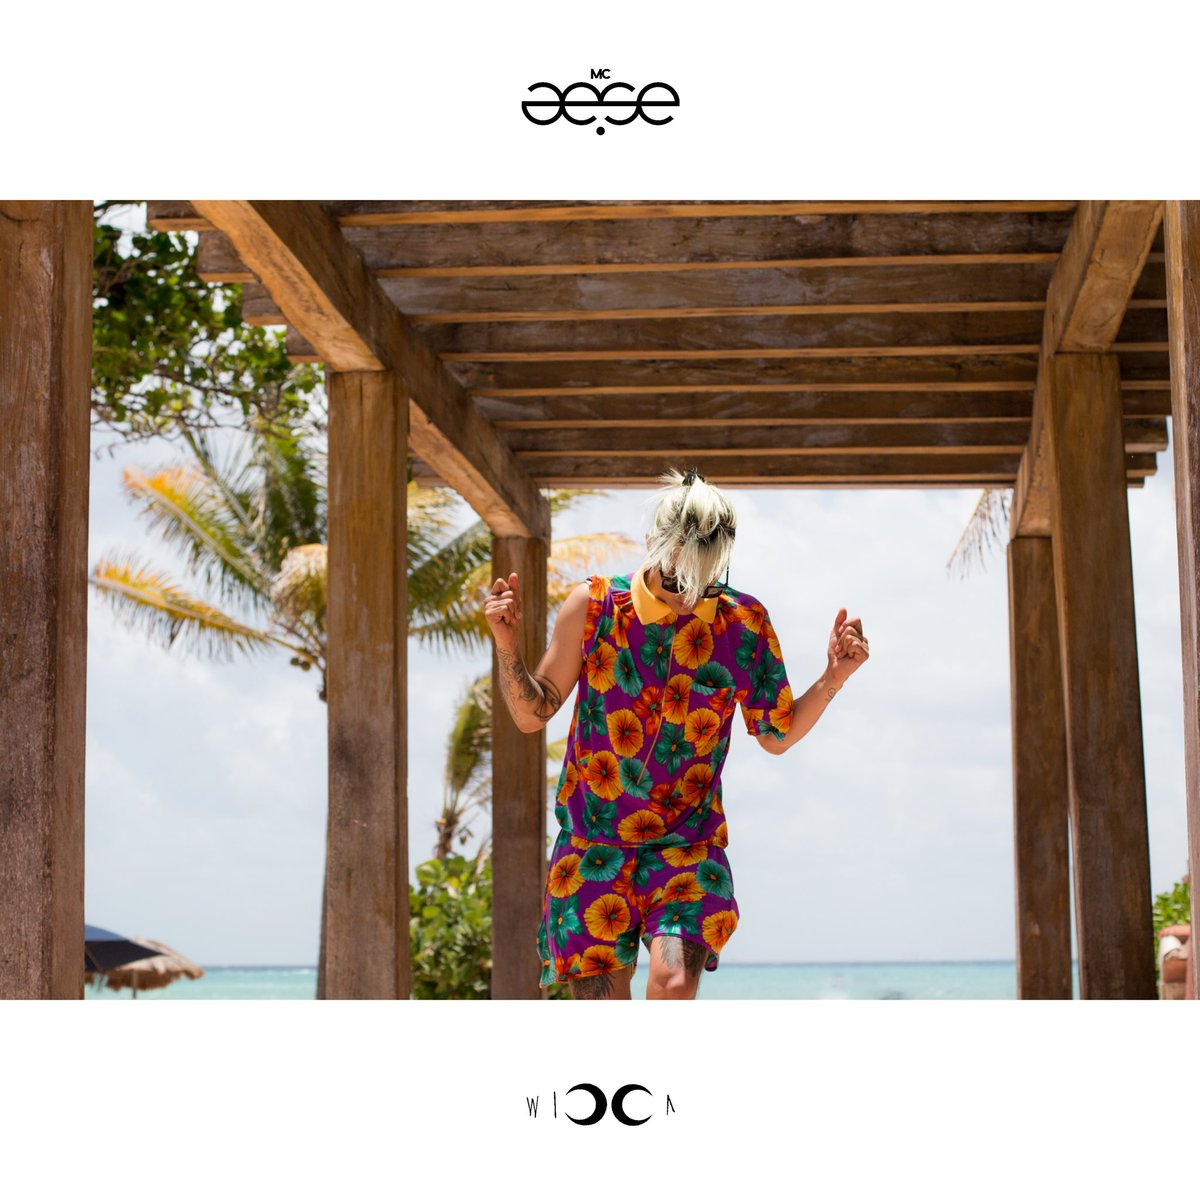 #Jumper #JumperParaHombre #ss17 #Beach #Wicca #LoMasTrend #Fashion #Playa  @wicca.couture  #HechoEnMéxico  #McAese #HipHop #Trend <br>http://pic.twitter.com/rqN7xlMXCA